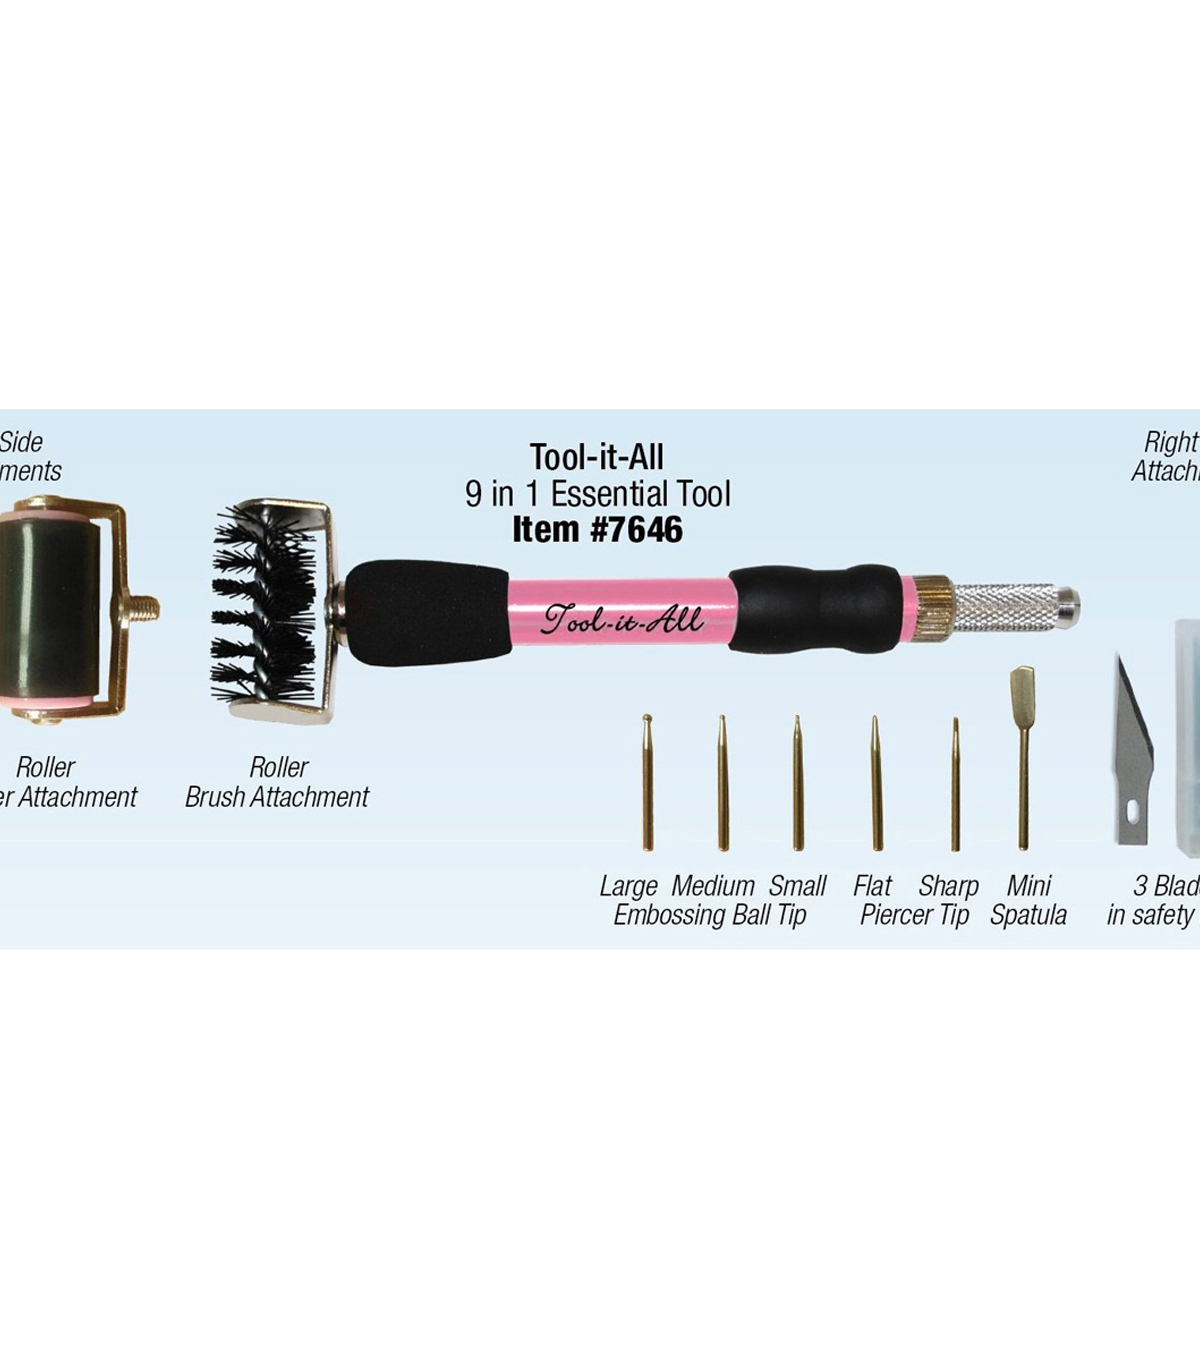 Zutter Tool-It-All 9 in 1 Essential Tool